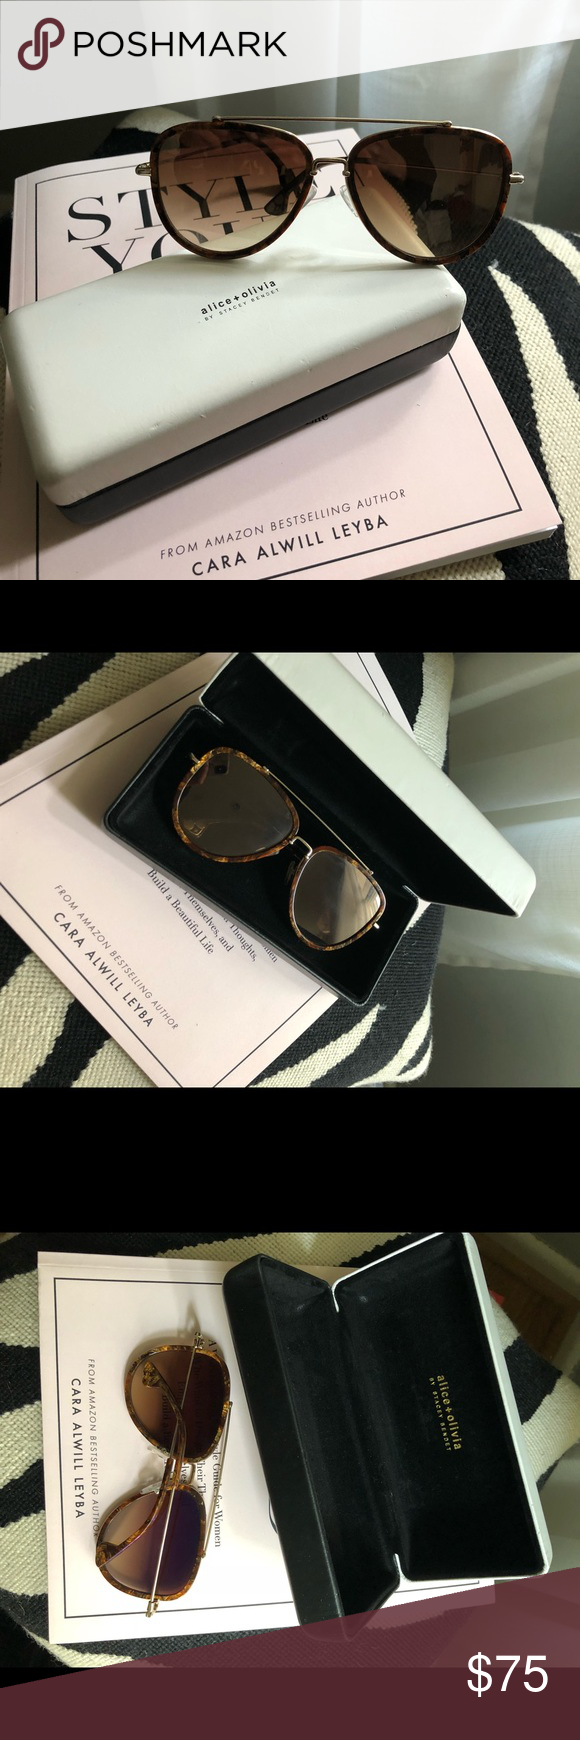 8d43e18d48 Alice + Olivia Lincoln Aviator Sunglasses Tortoise Alice + Olivia Lincoln  Aviator Sunglasses Tortoise - Color